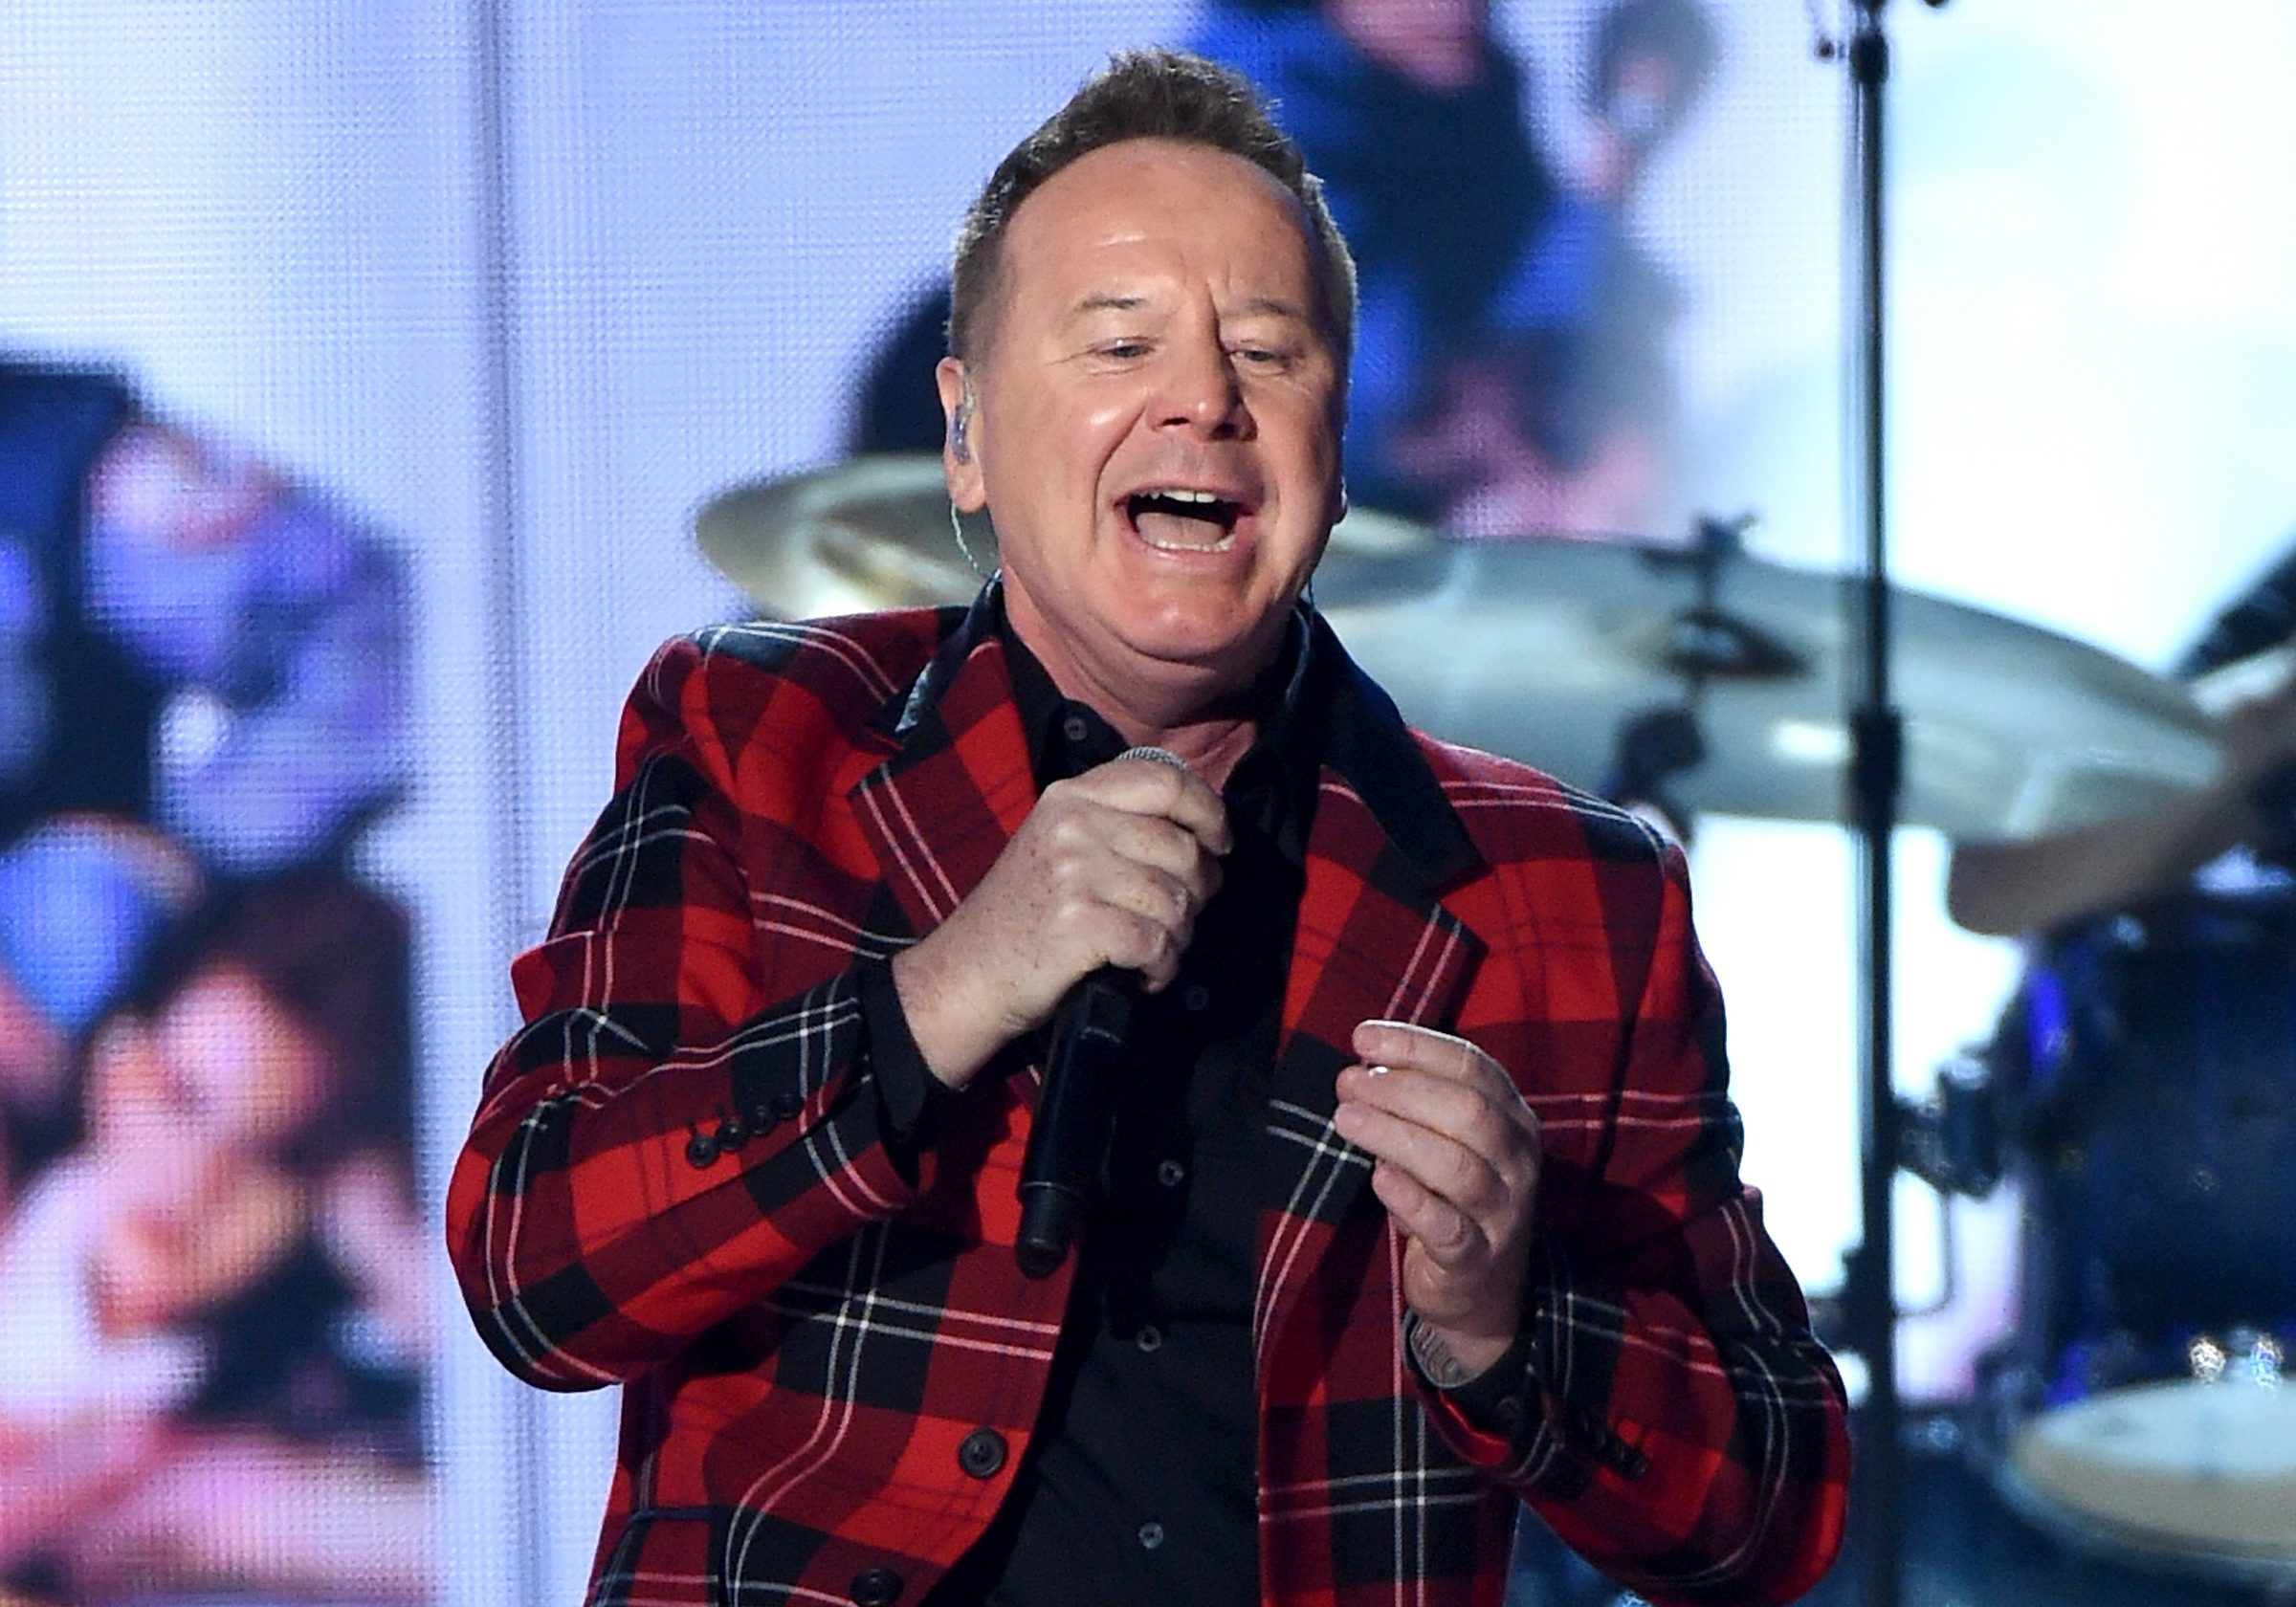 Singer James Kerr of Simple Minds (Photo by Ethan Miller/Getty Images)